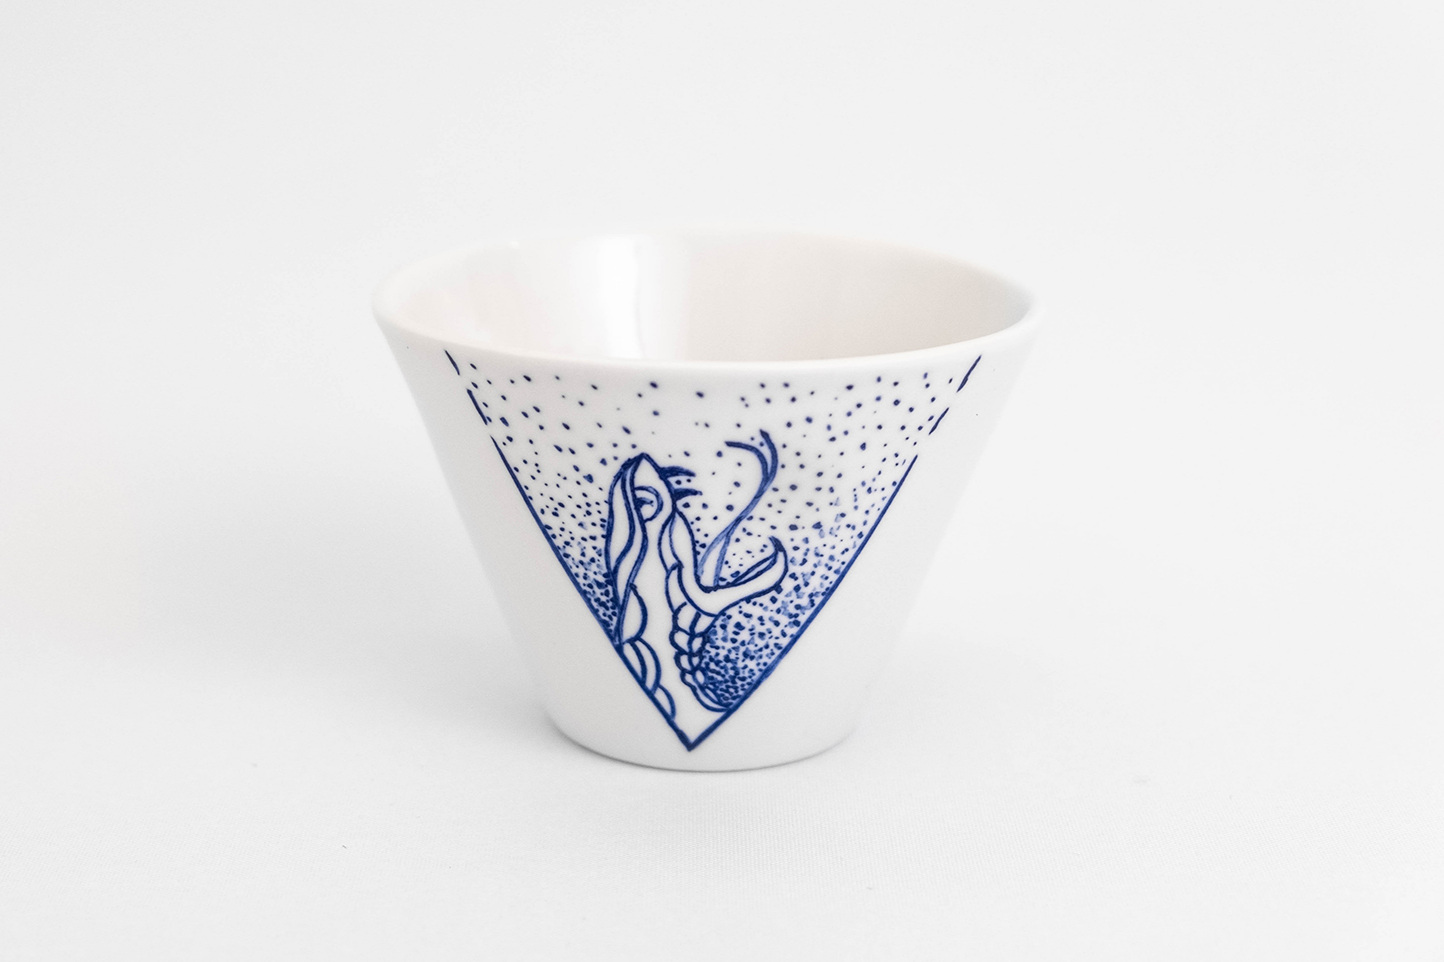 Ceramic blue white cup handmade hand painted delft blau tableware porcelain tattoo snake antikapratika.jpg